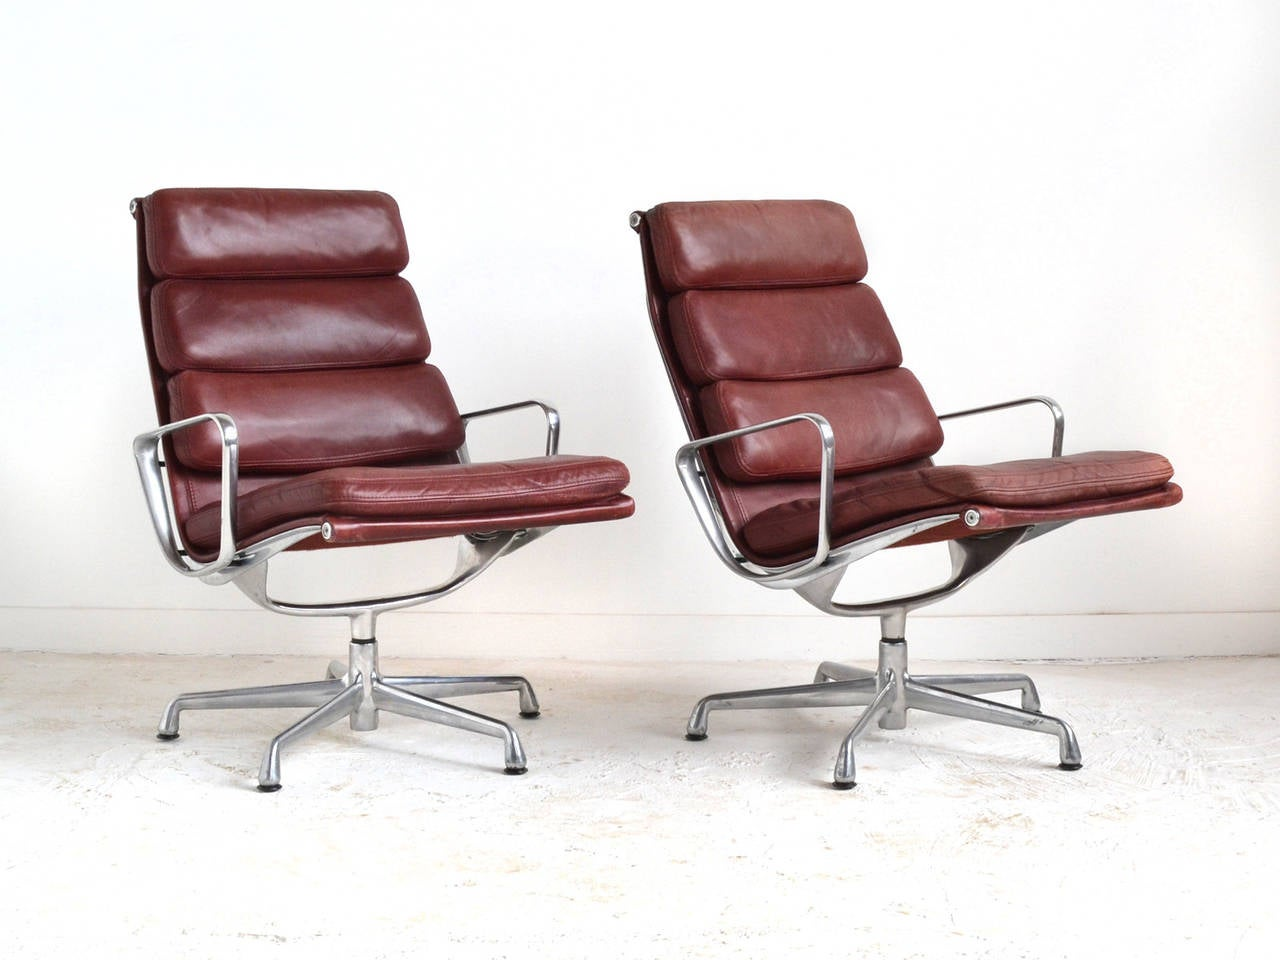 eames soft pad lounge chairs by herman miller for sale at. Black Bedroom Furniture Sets. Home Design Ideas